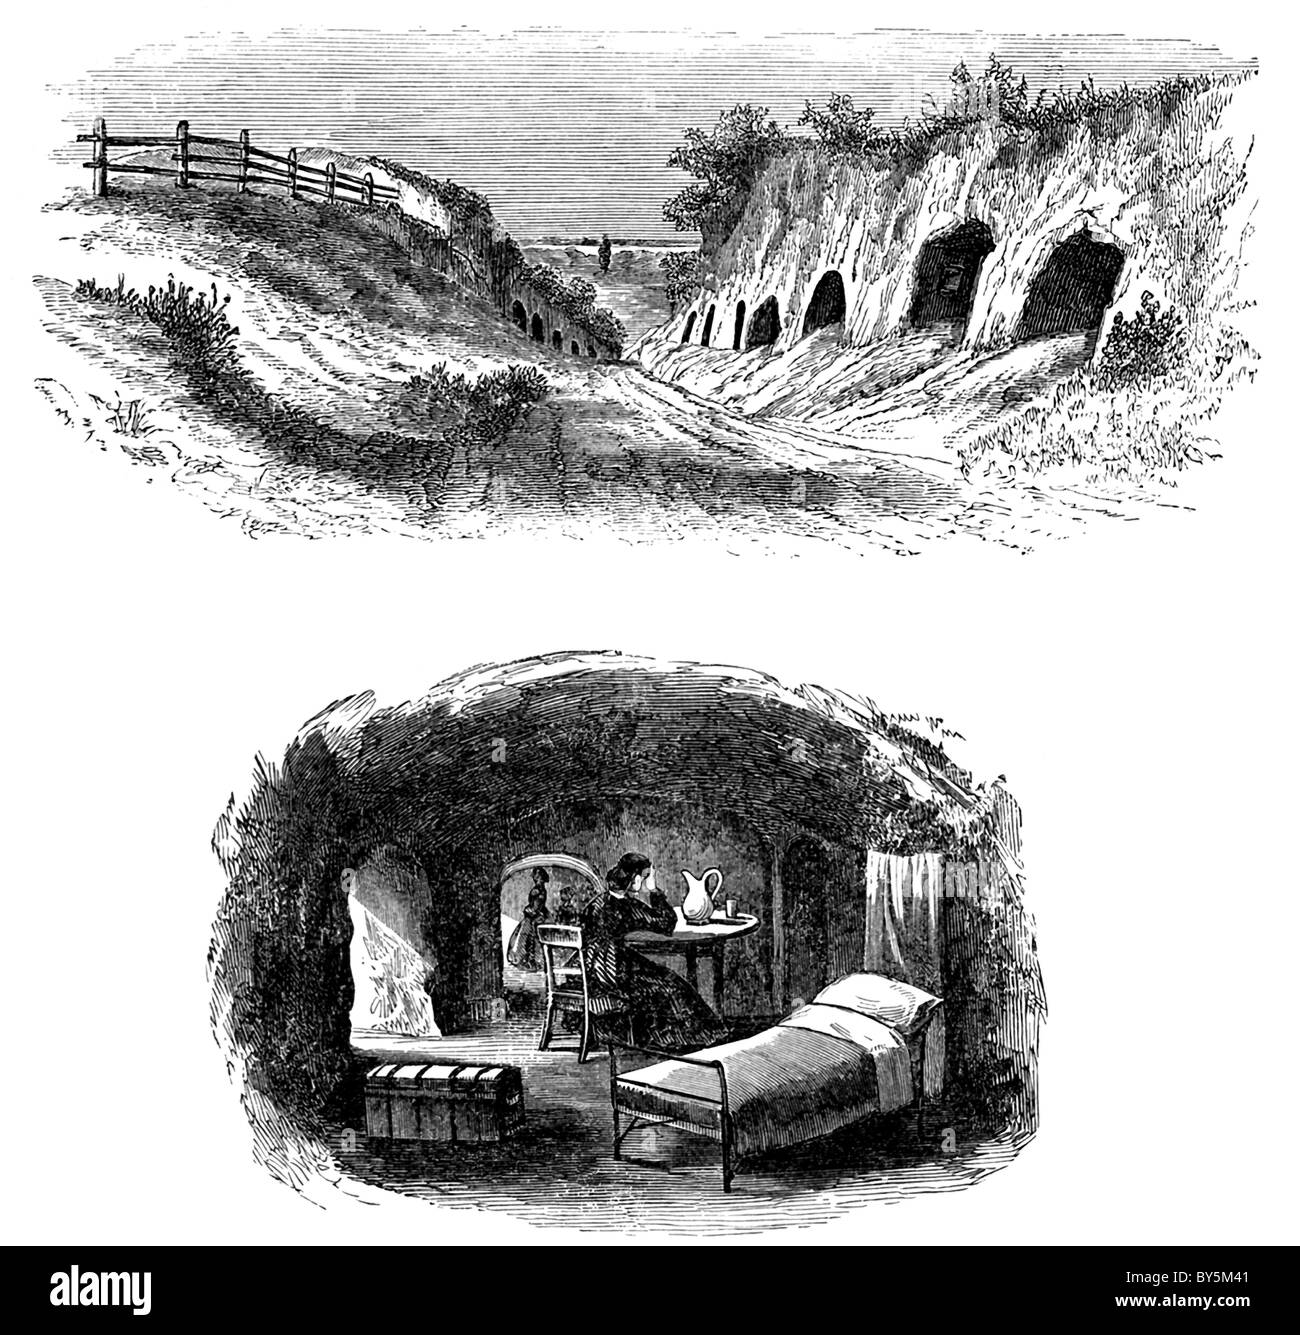 These engravings date to April 1886 and illustrate the caves near Vicksburg, Mississippi in the Civil War. - Stock Image